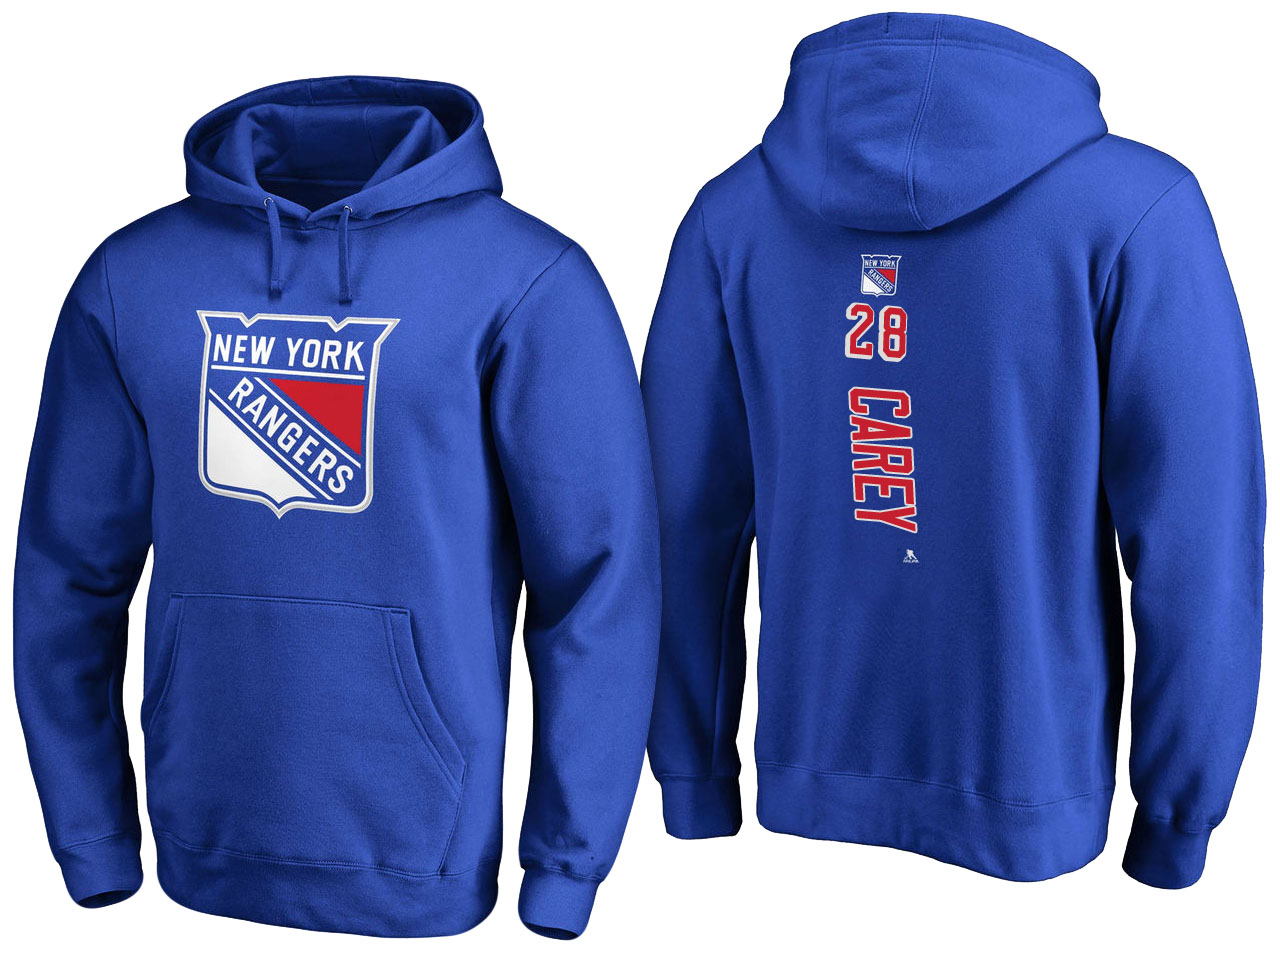 NHL Men New York Rangers 28 Carey blue Adidas Hoodie